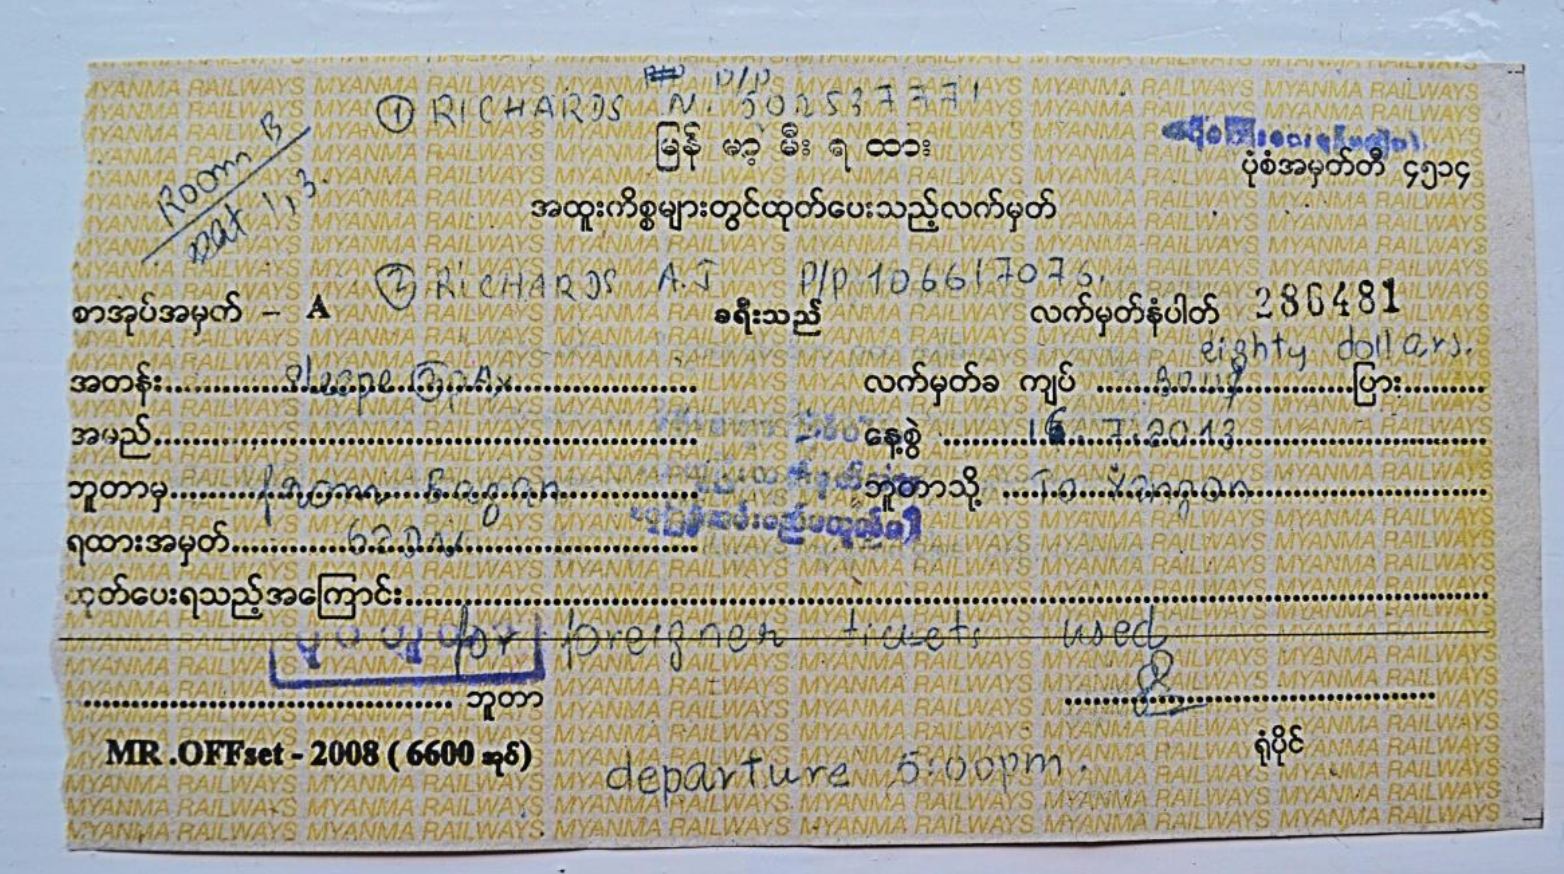 The train ticket.